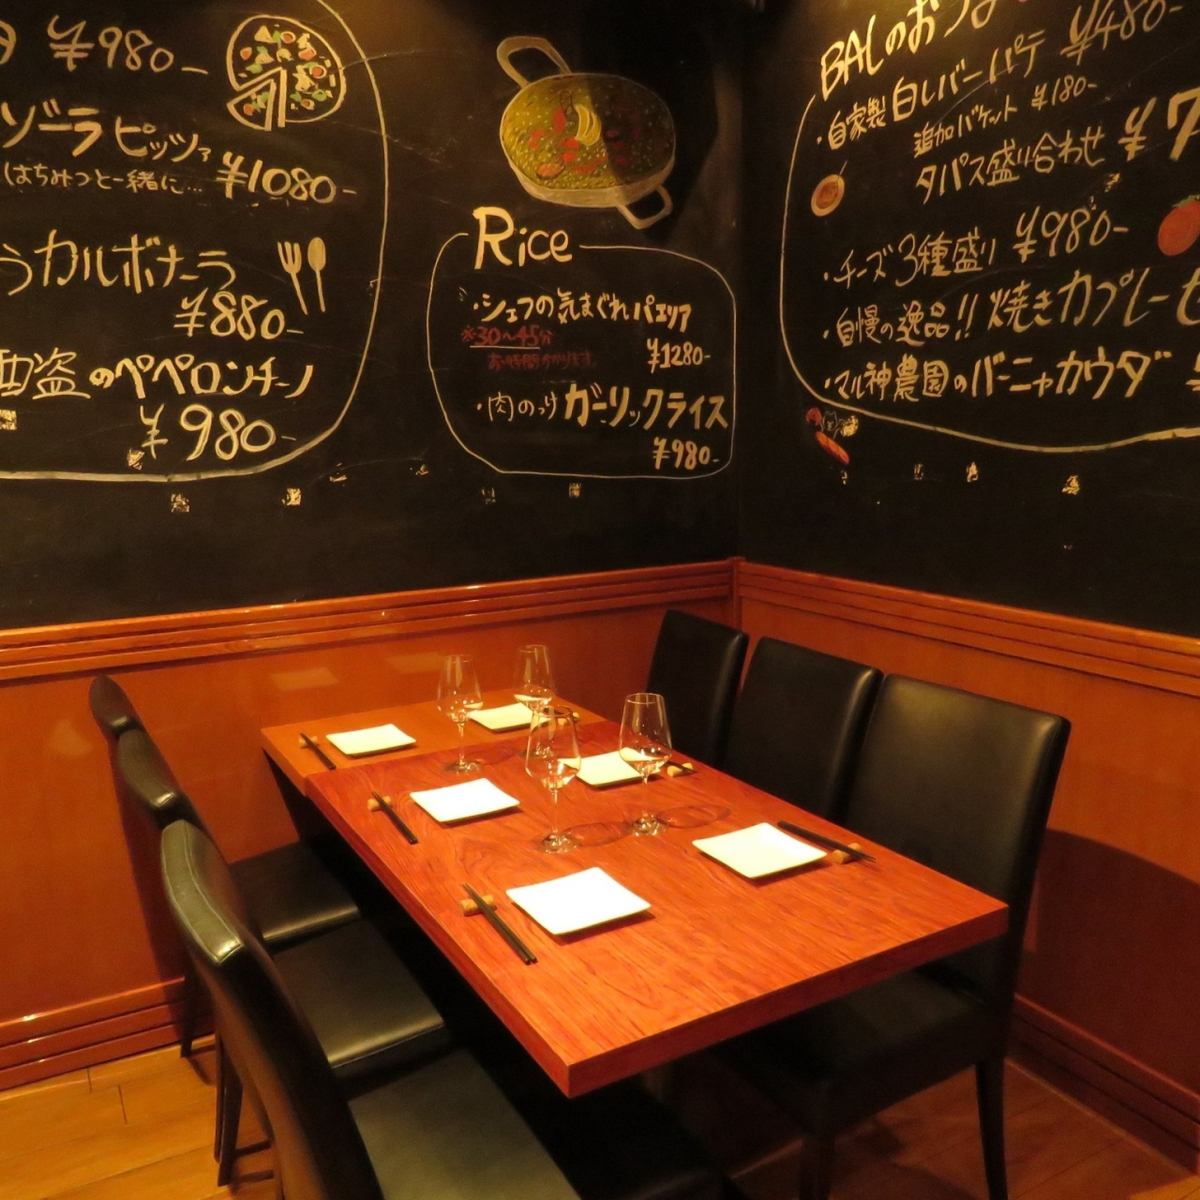 Popular private room ♪ We will give priority to customers of reservation ♪